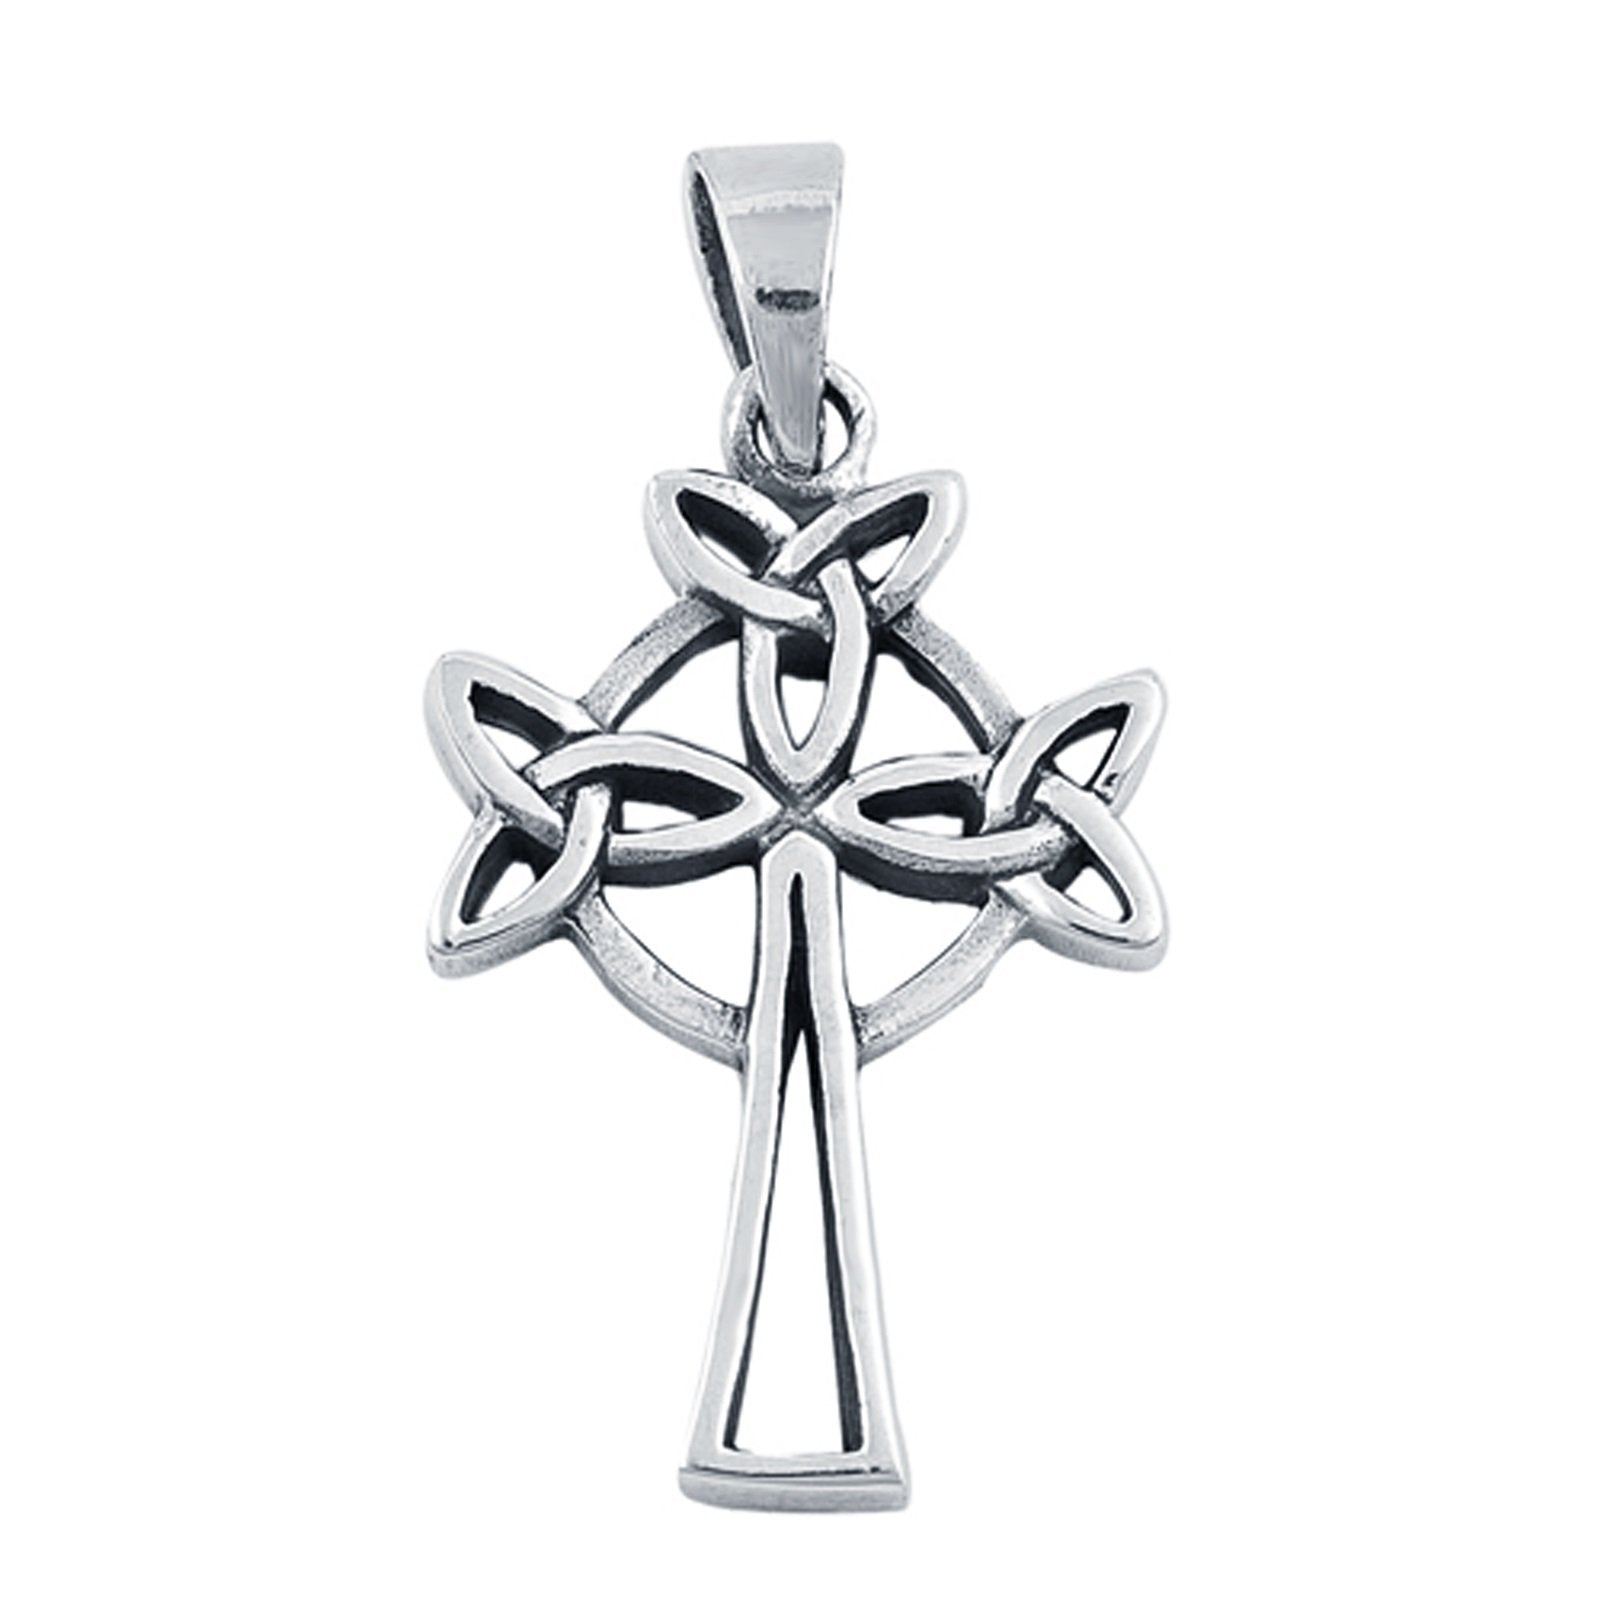 Celtic Design Cross Pendant Charm 925 Sterling Silver